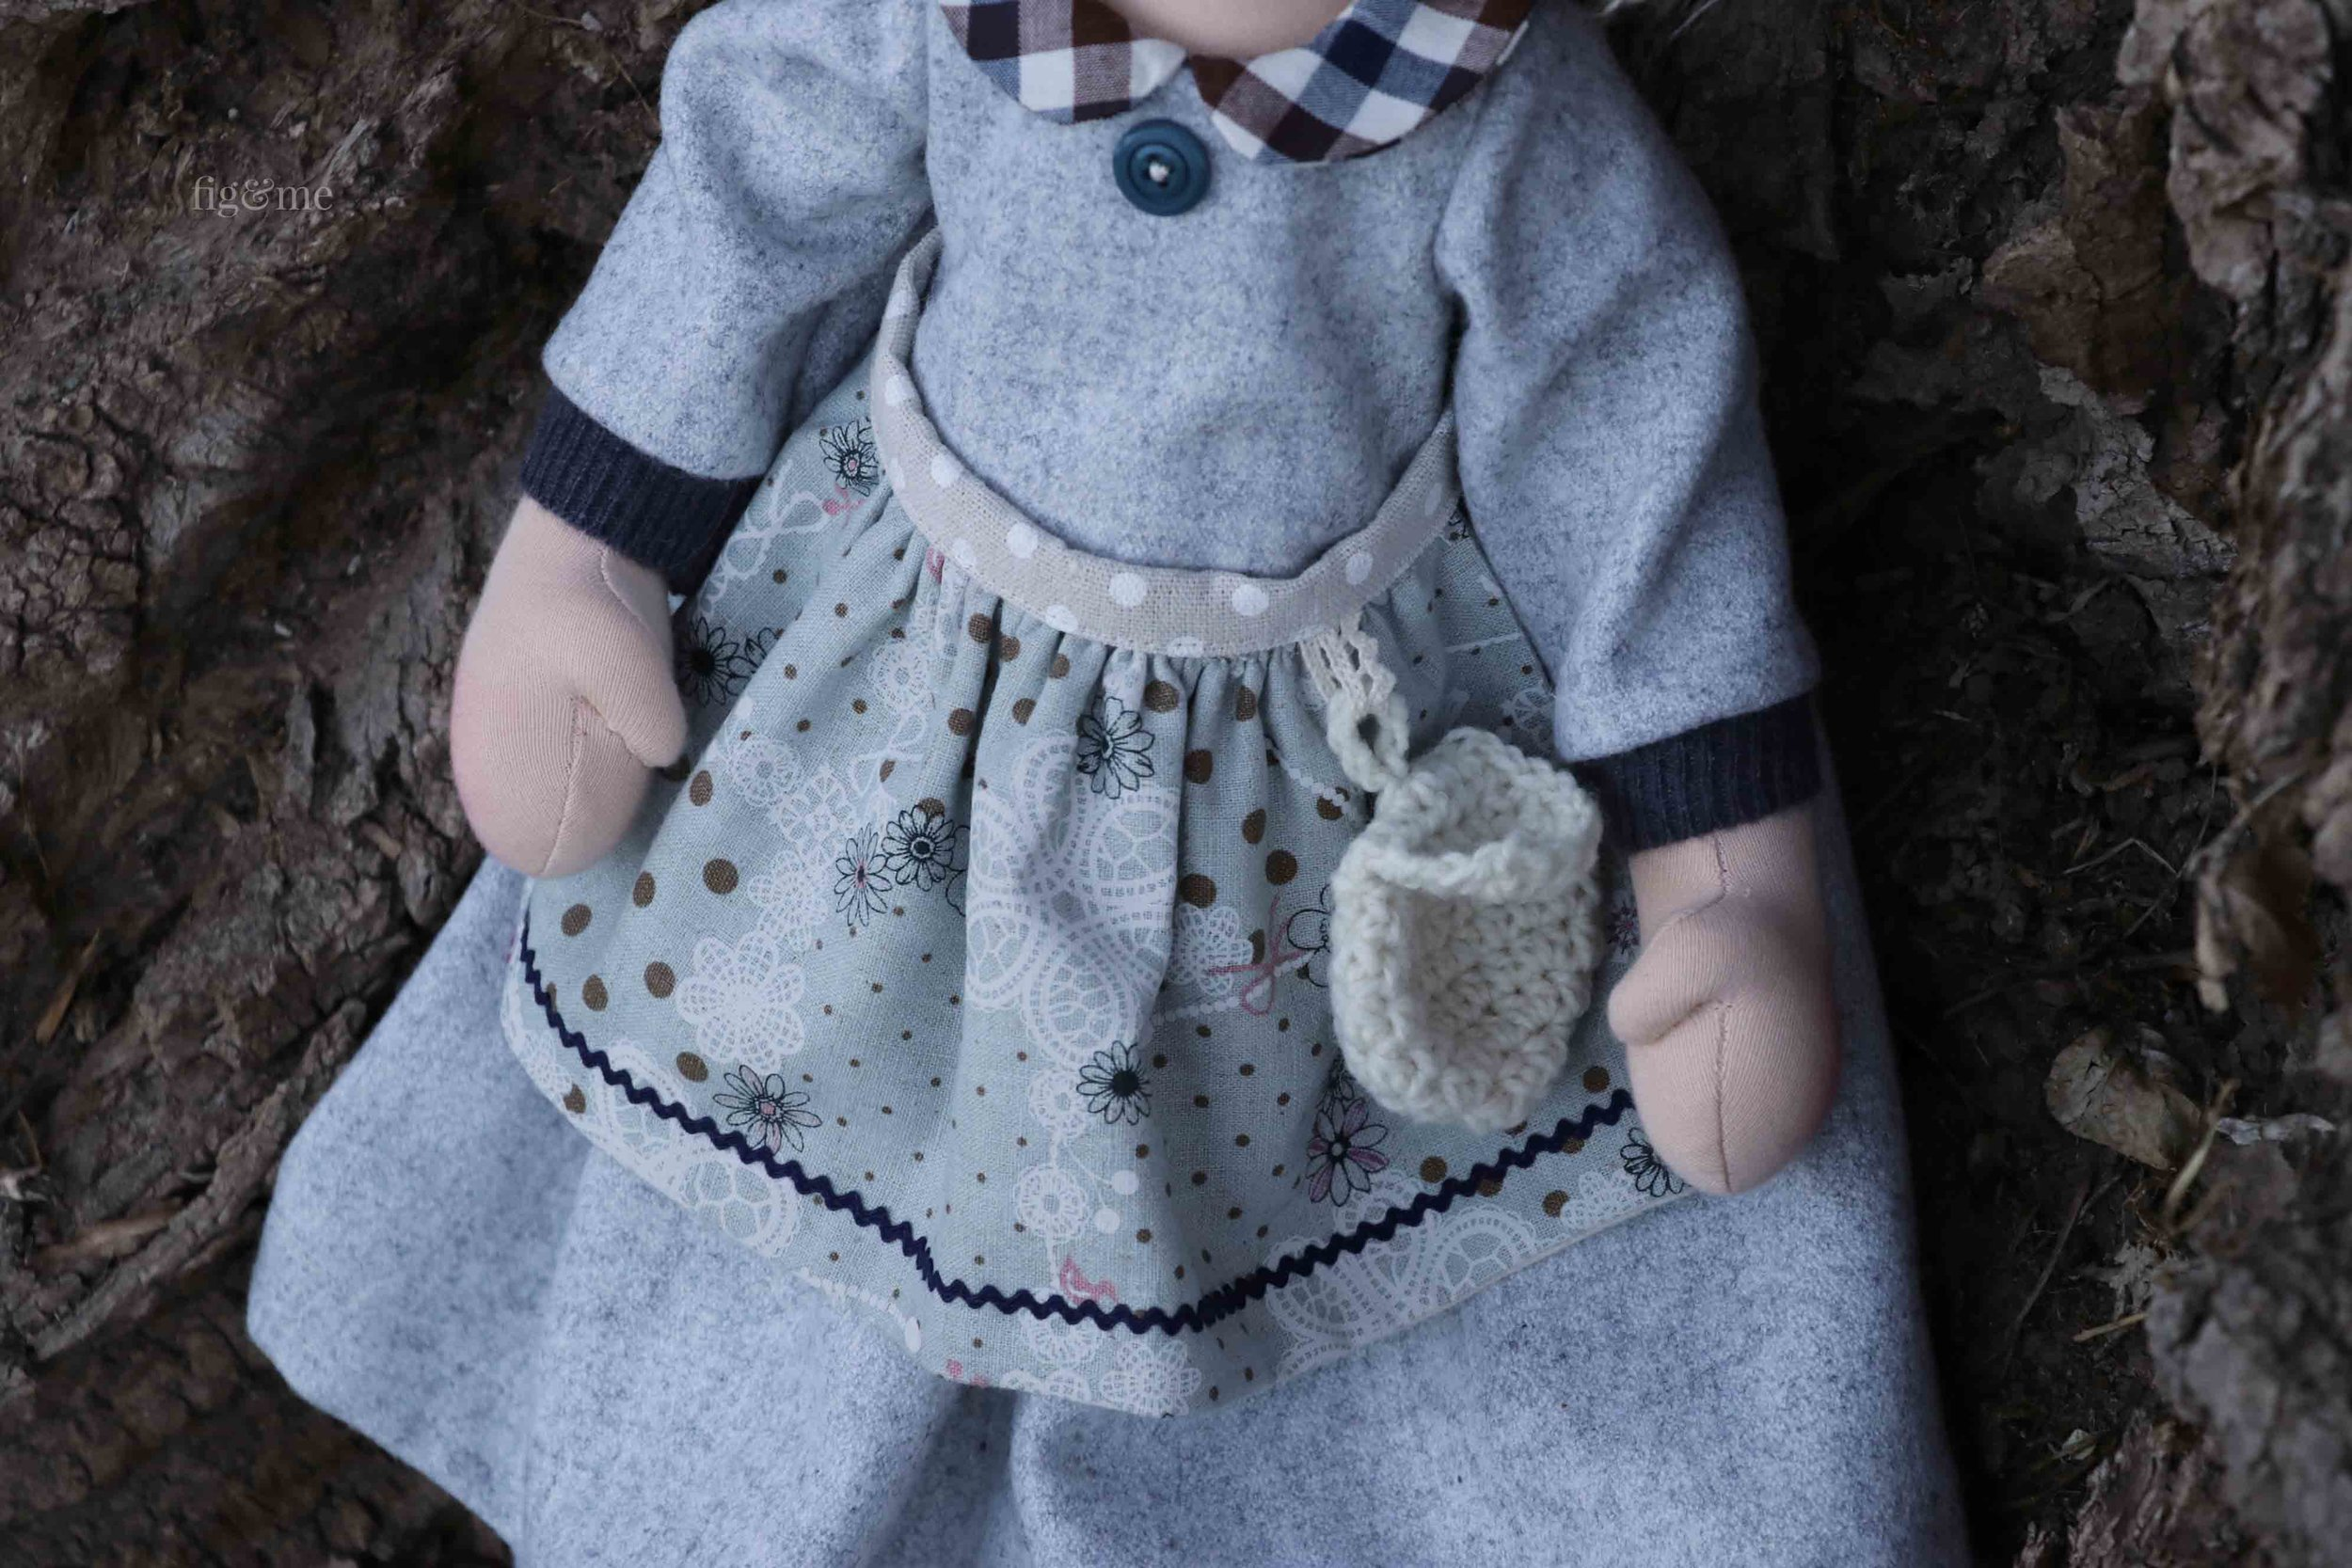 Snow White's clothes are made of wool flannel, linen, wool yarn, cashmere and cotton. All natural fibers used in the creation of this set of dolls. Made by Fig and Me.